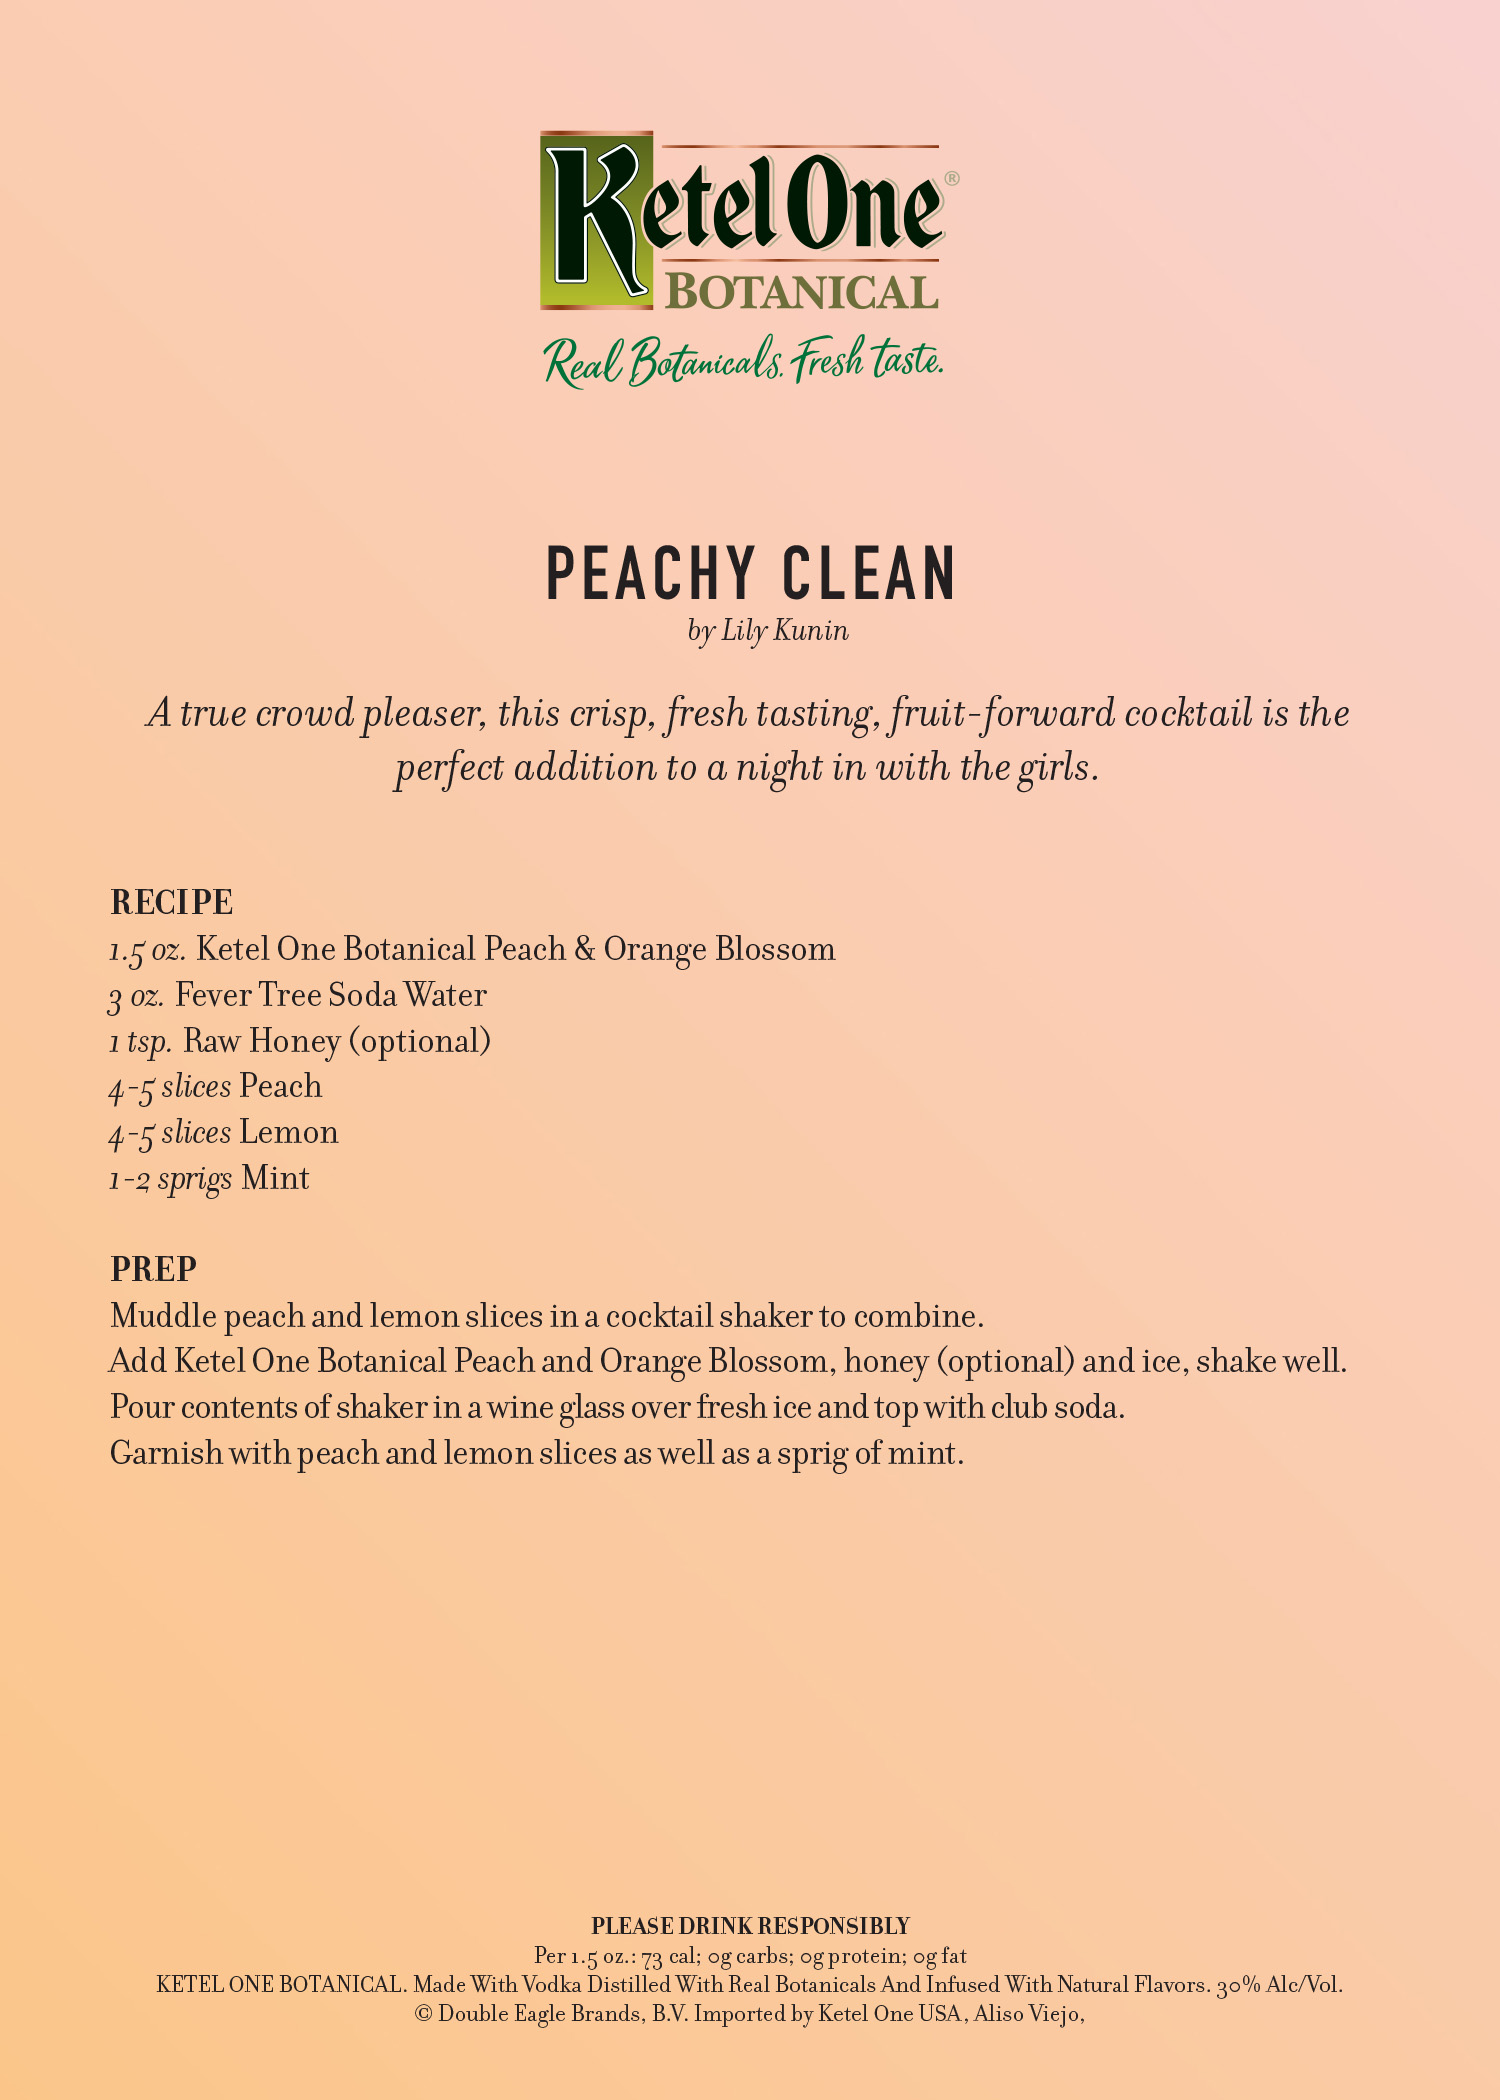 Peachy Clean by Lily Kunin